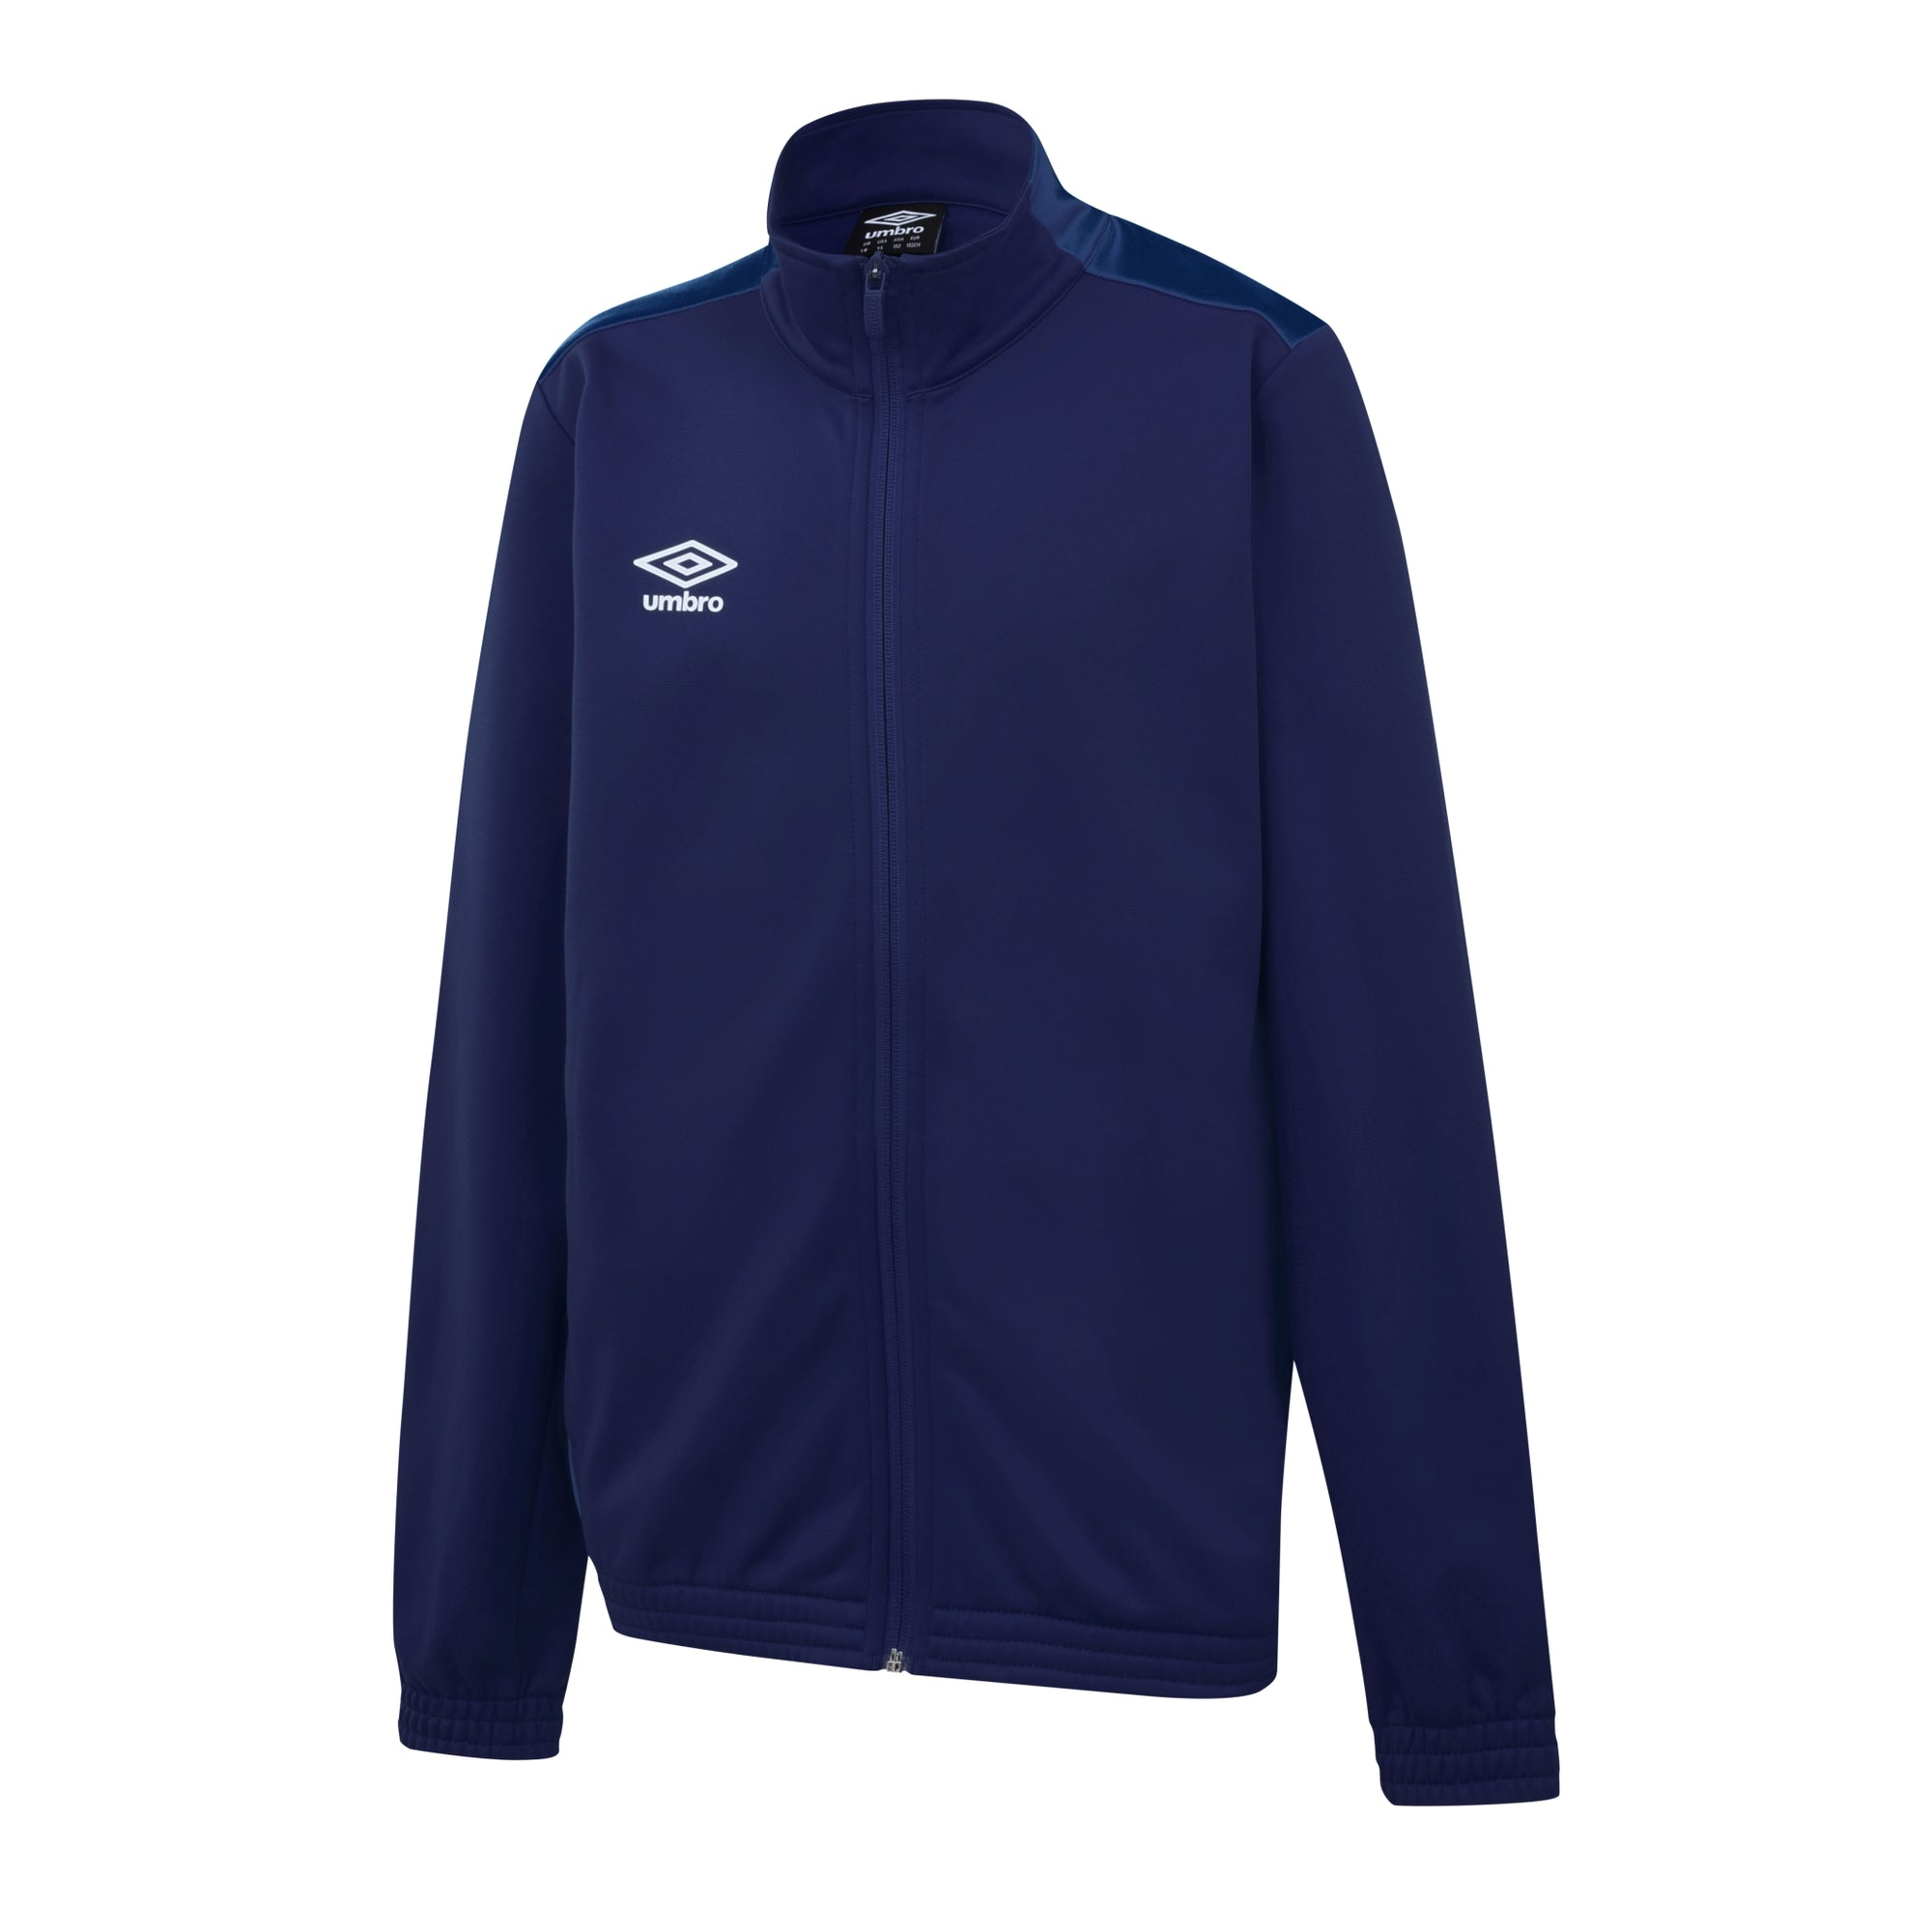 Umbro Training Knitted Jacket - Navy/Dark Navy